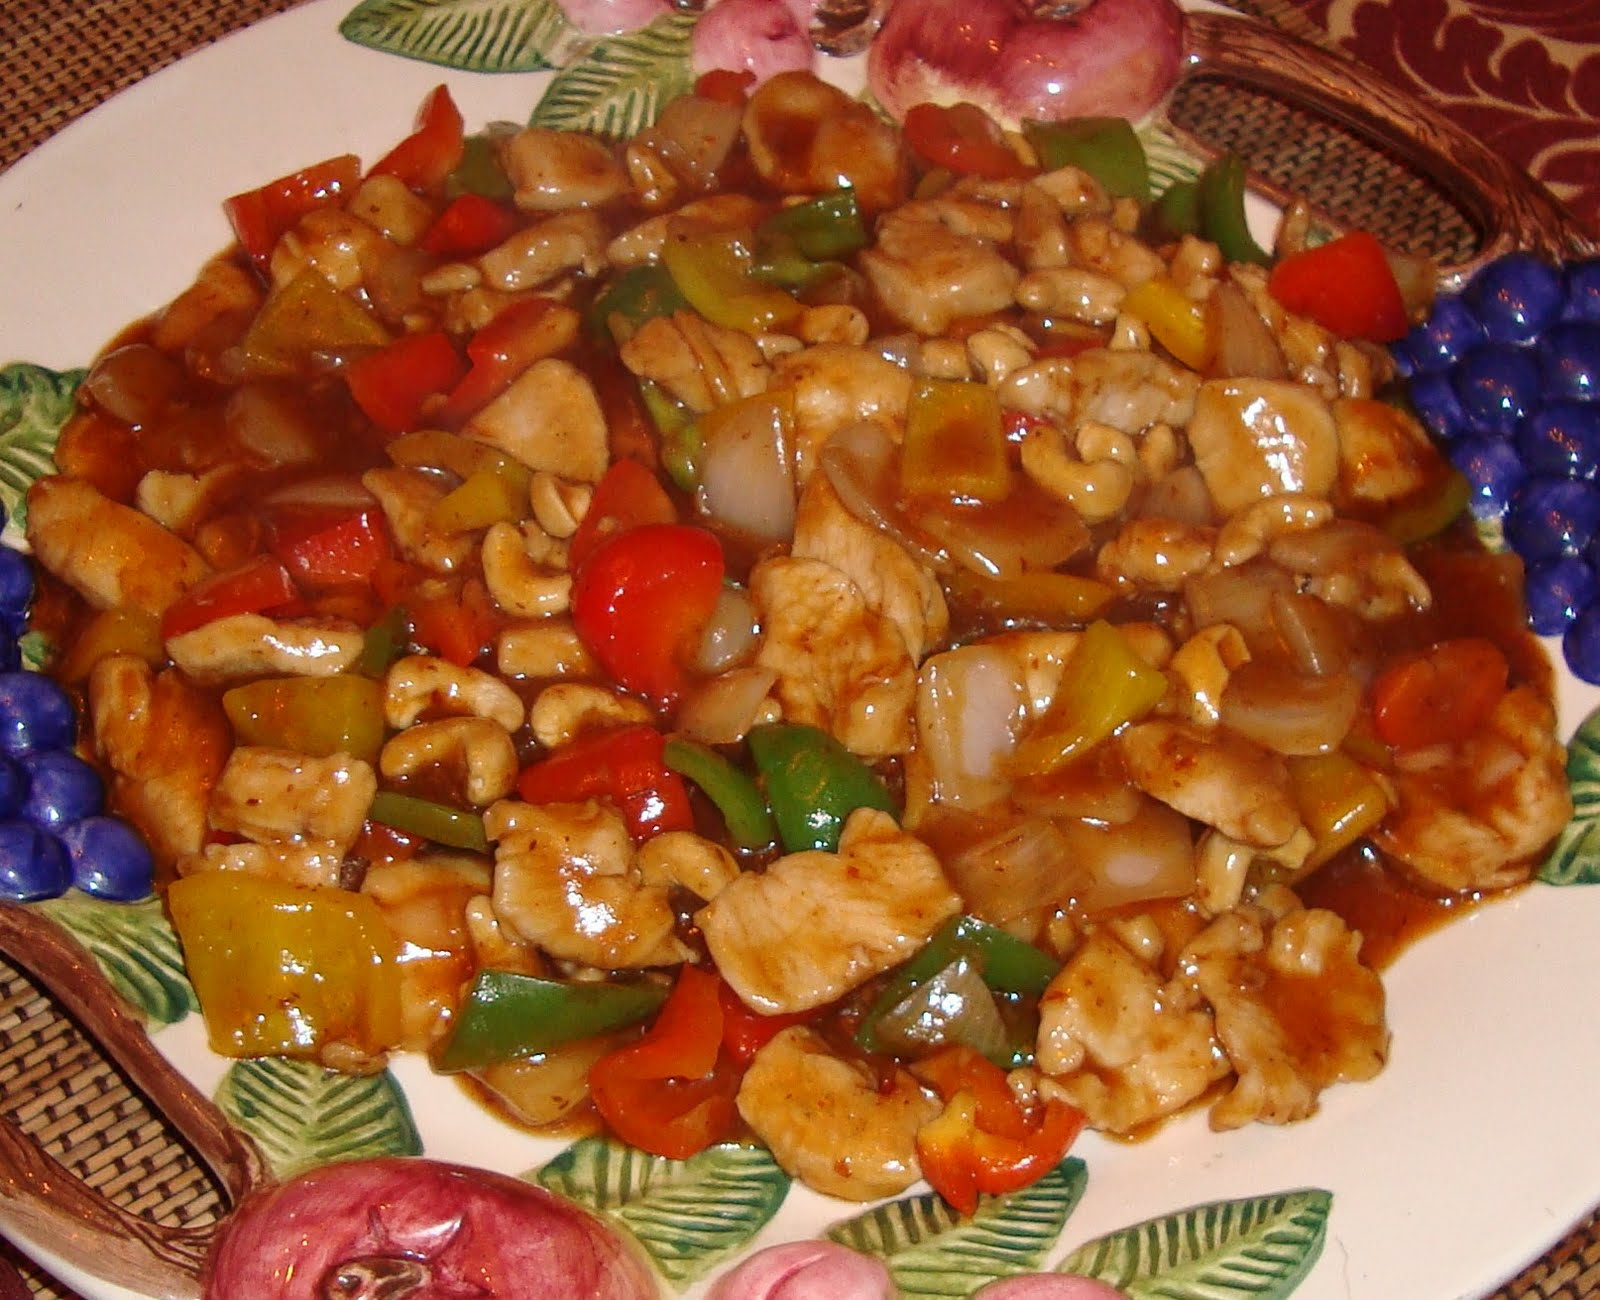 Chinese Food Fix: Kung Pao Chicken